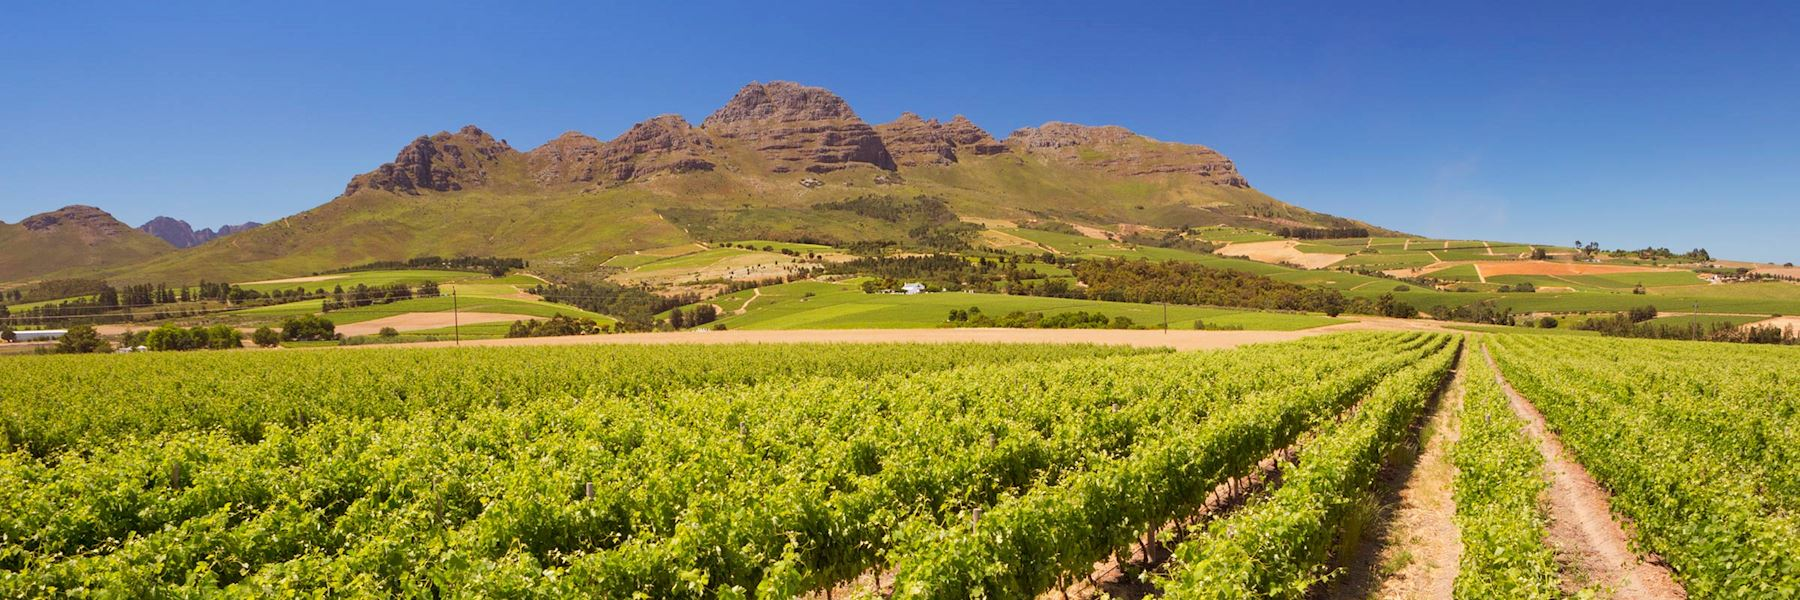 Visit Stellenbosch, South Africa